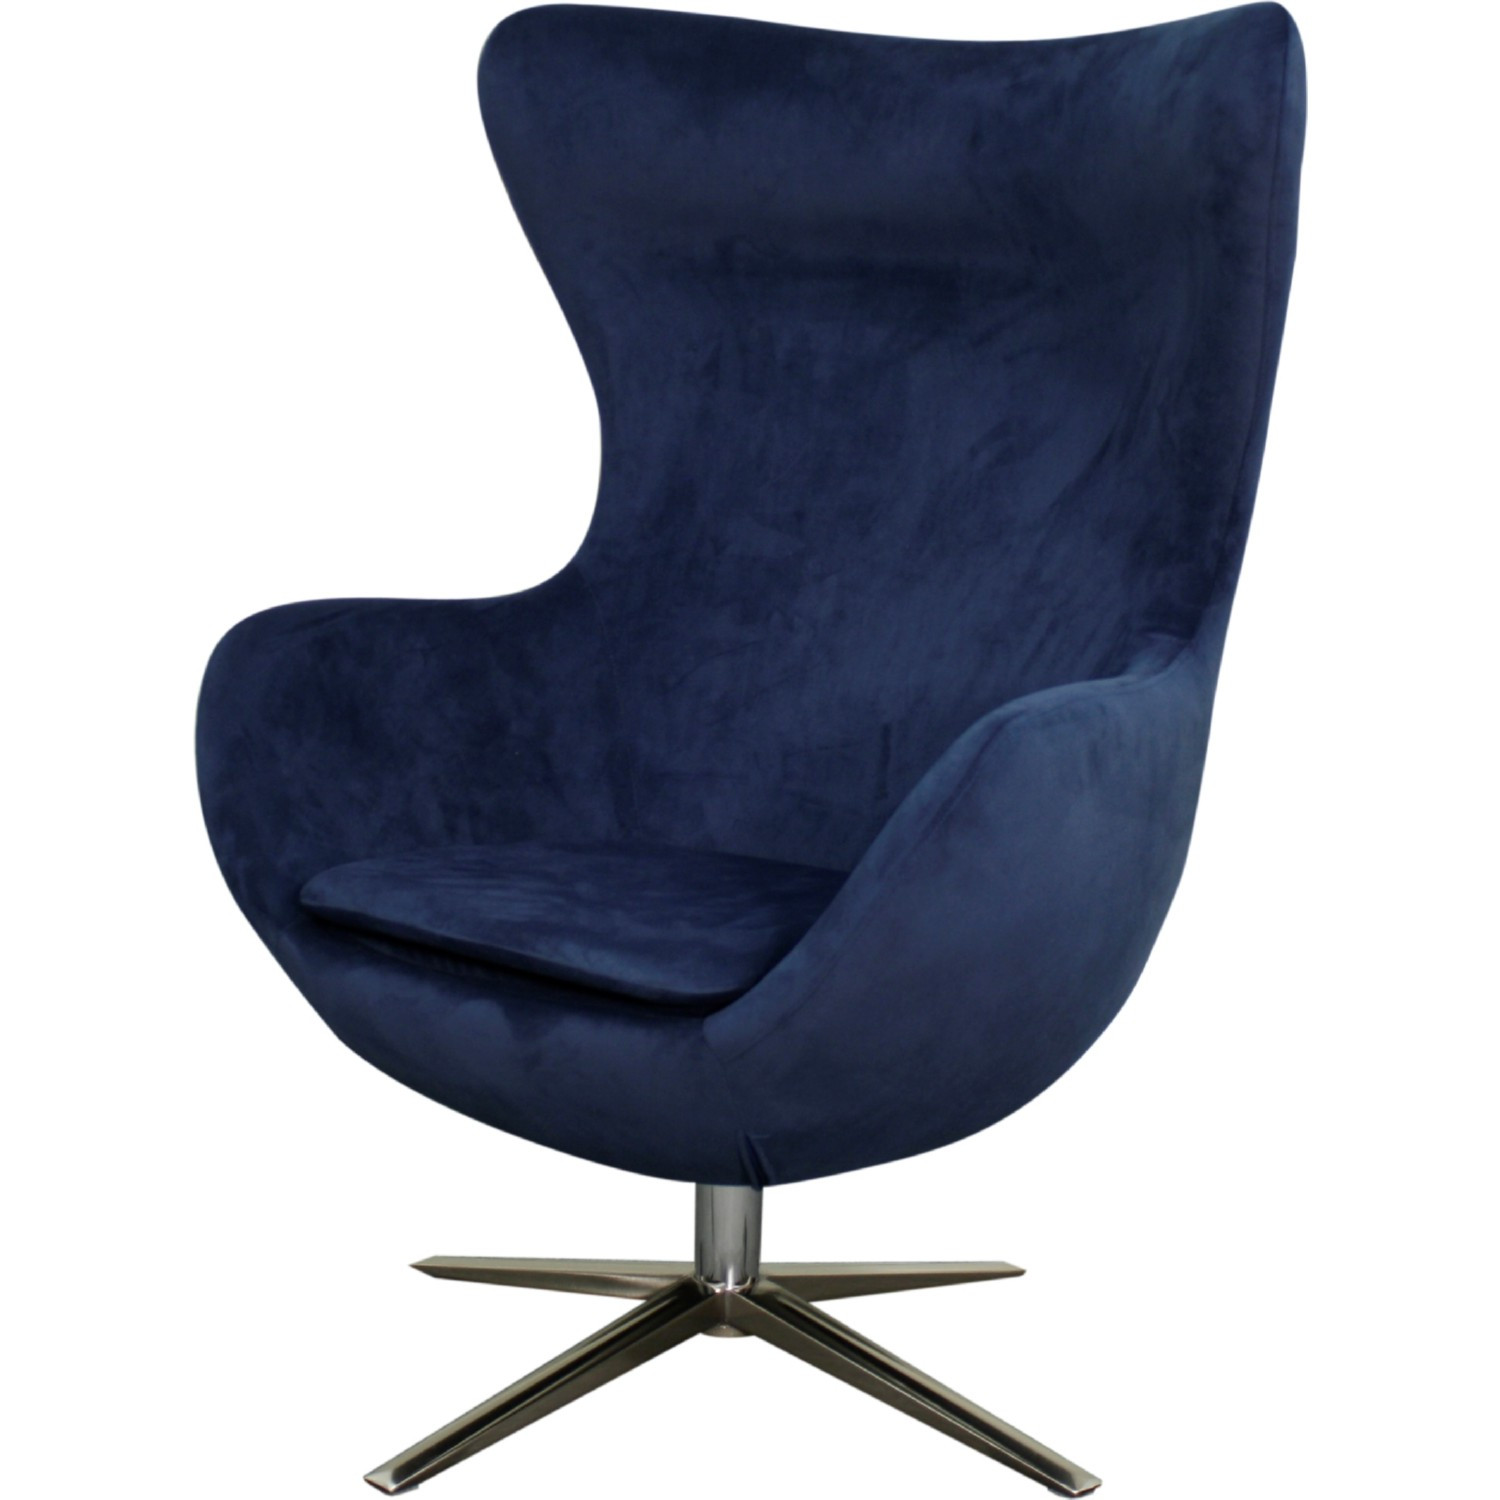 Strange Finn Swivel Accent Chair In Midnight Blue Fabric On Chrome Legs By New Pacific Direct Unemploymentrelief Wooden Chair Designs For Living Room Unemploymentrelieforg